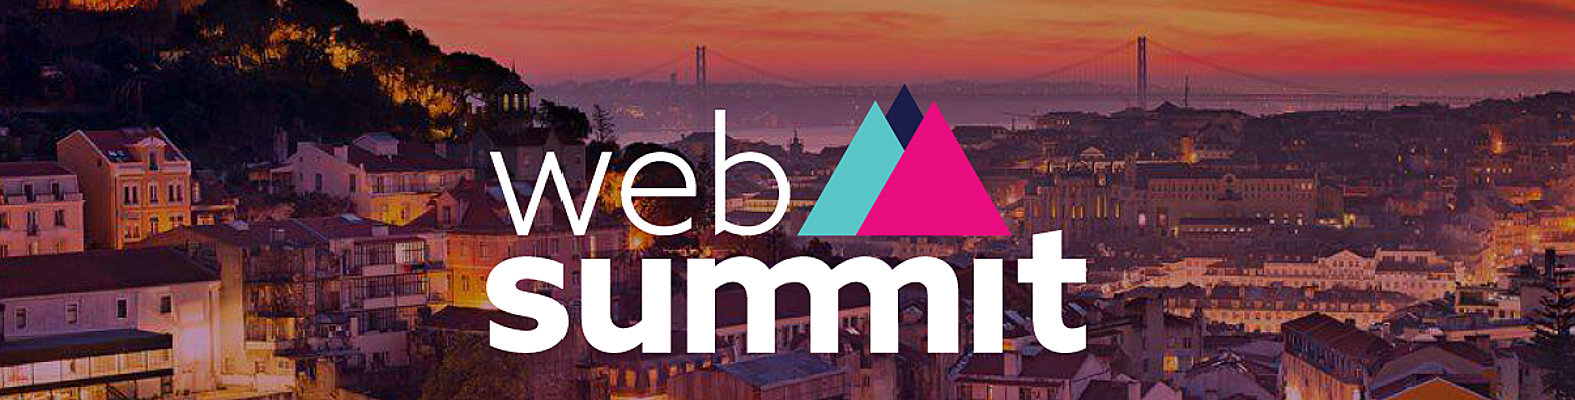 Algarve - websummit-lisboa.png